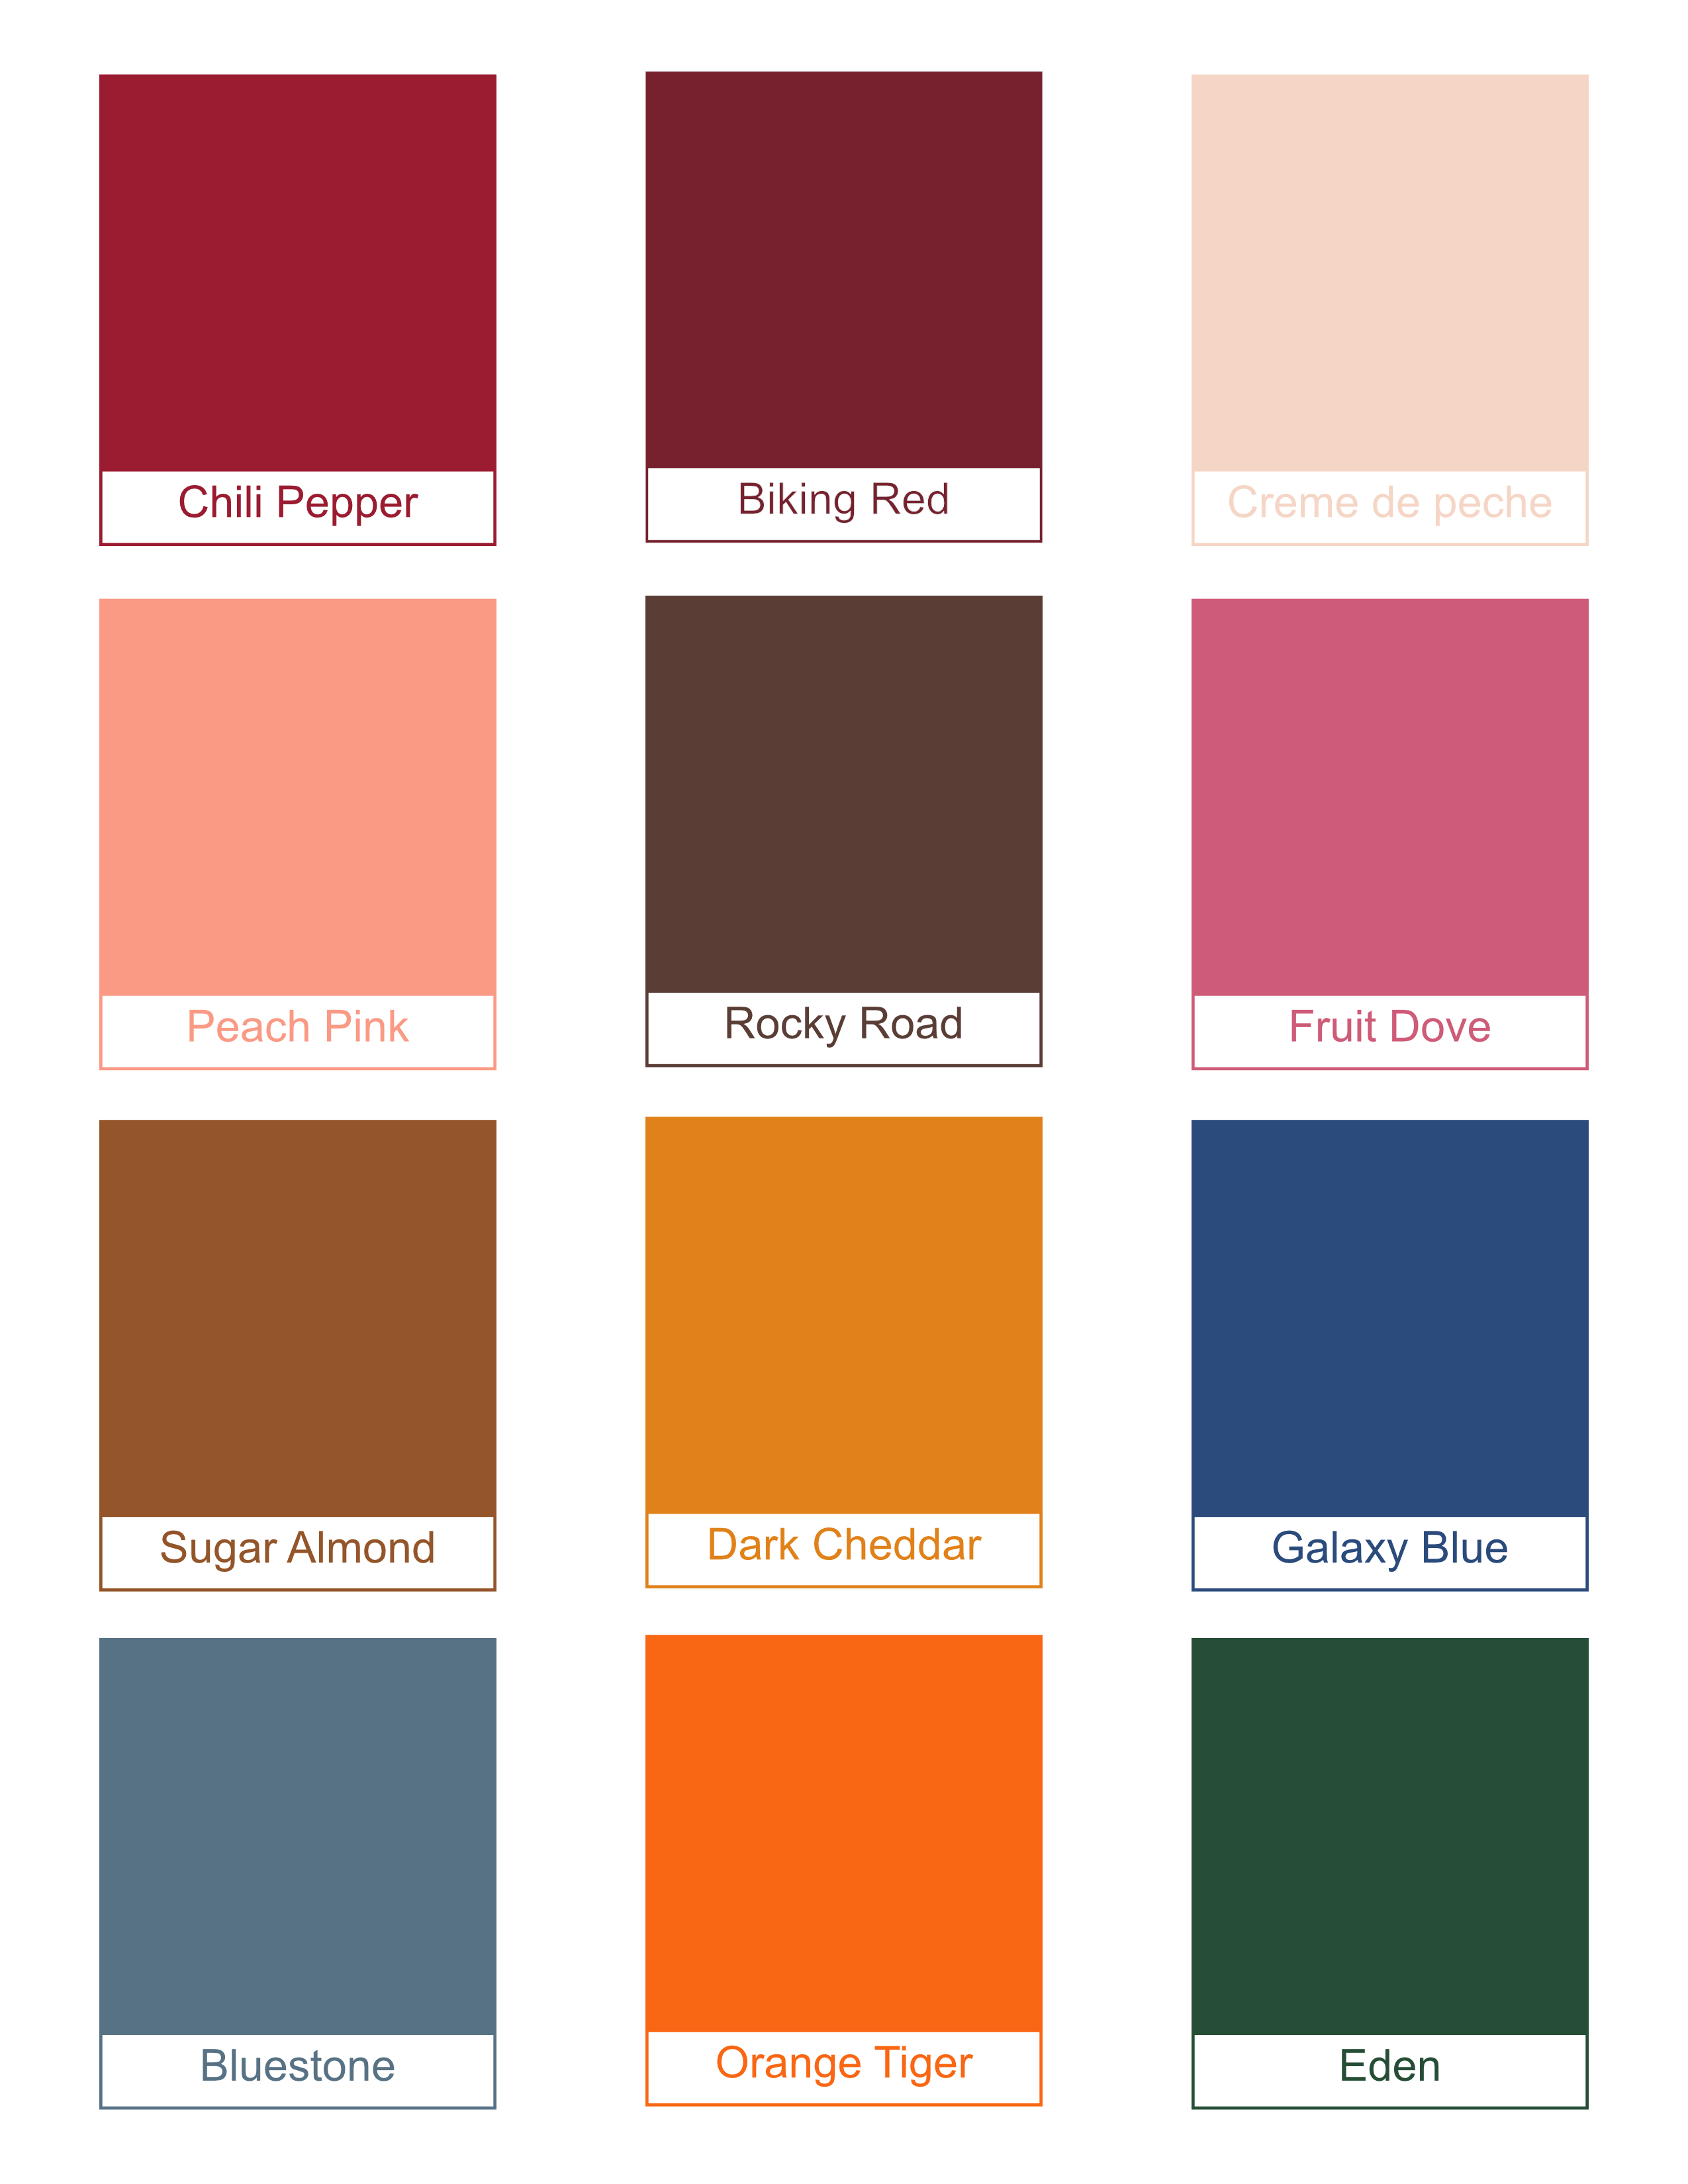 The Liberating Pantone Colors Of Fall Winter 2019 2020 Style By Jamie Lea,Small 2 Bedroom Apartment Interior Design Ideas